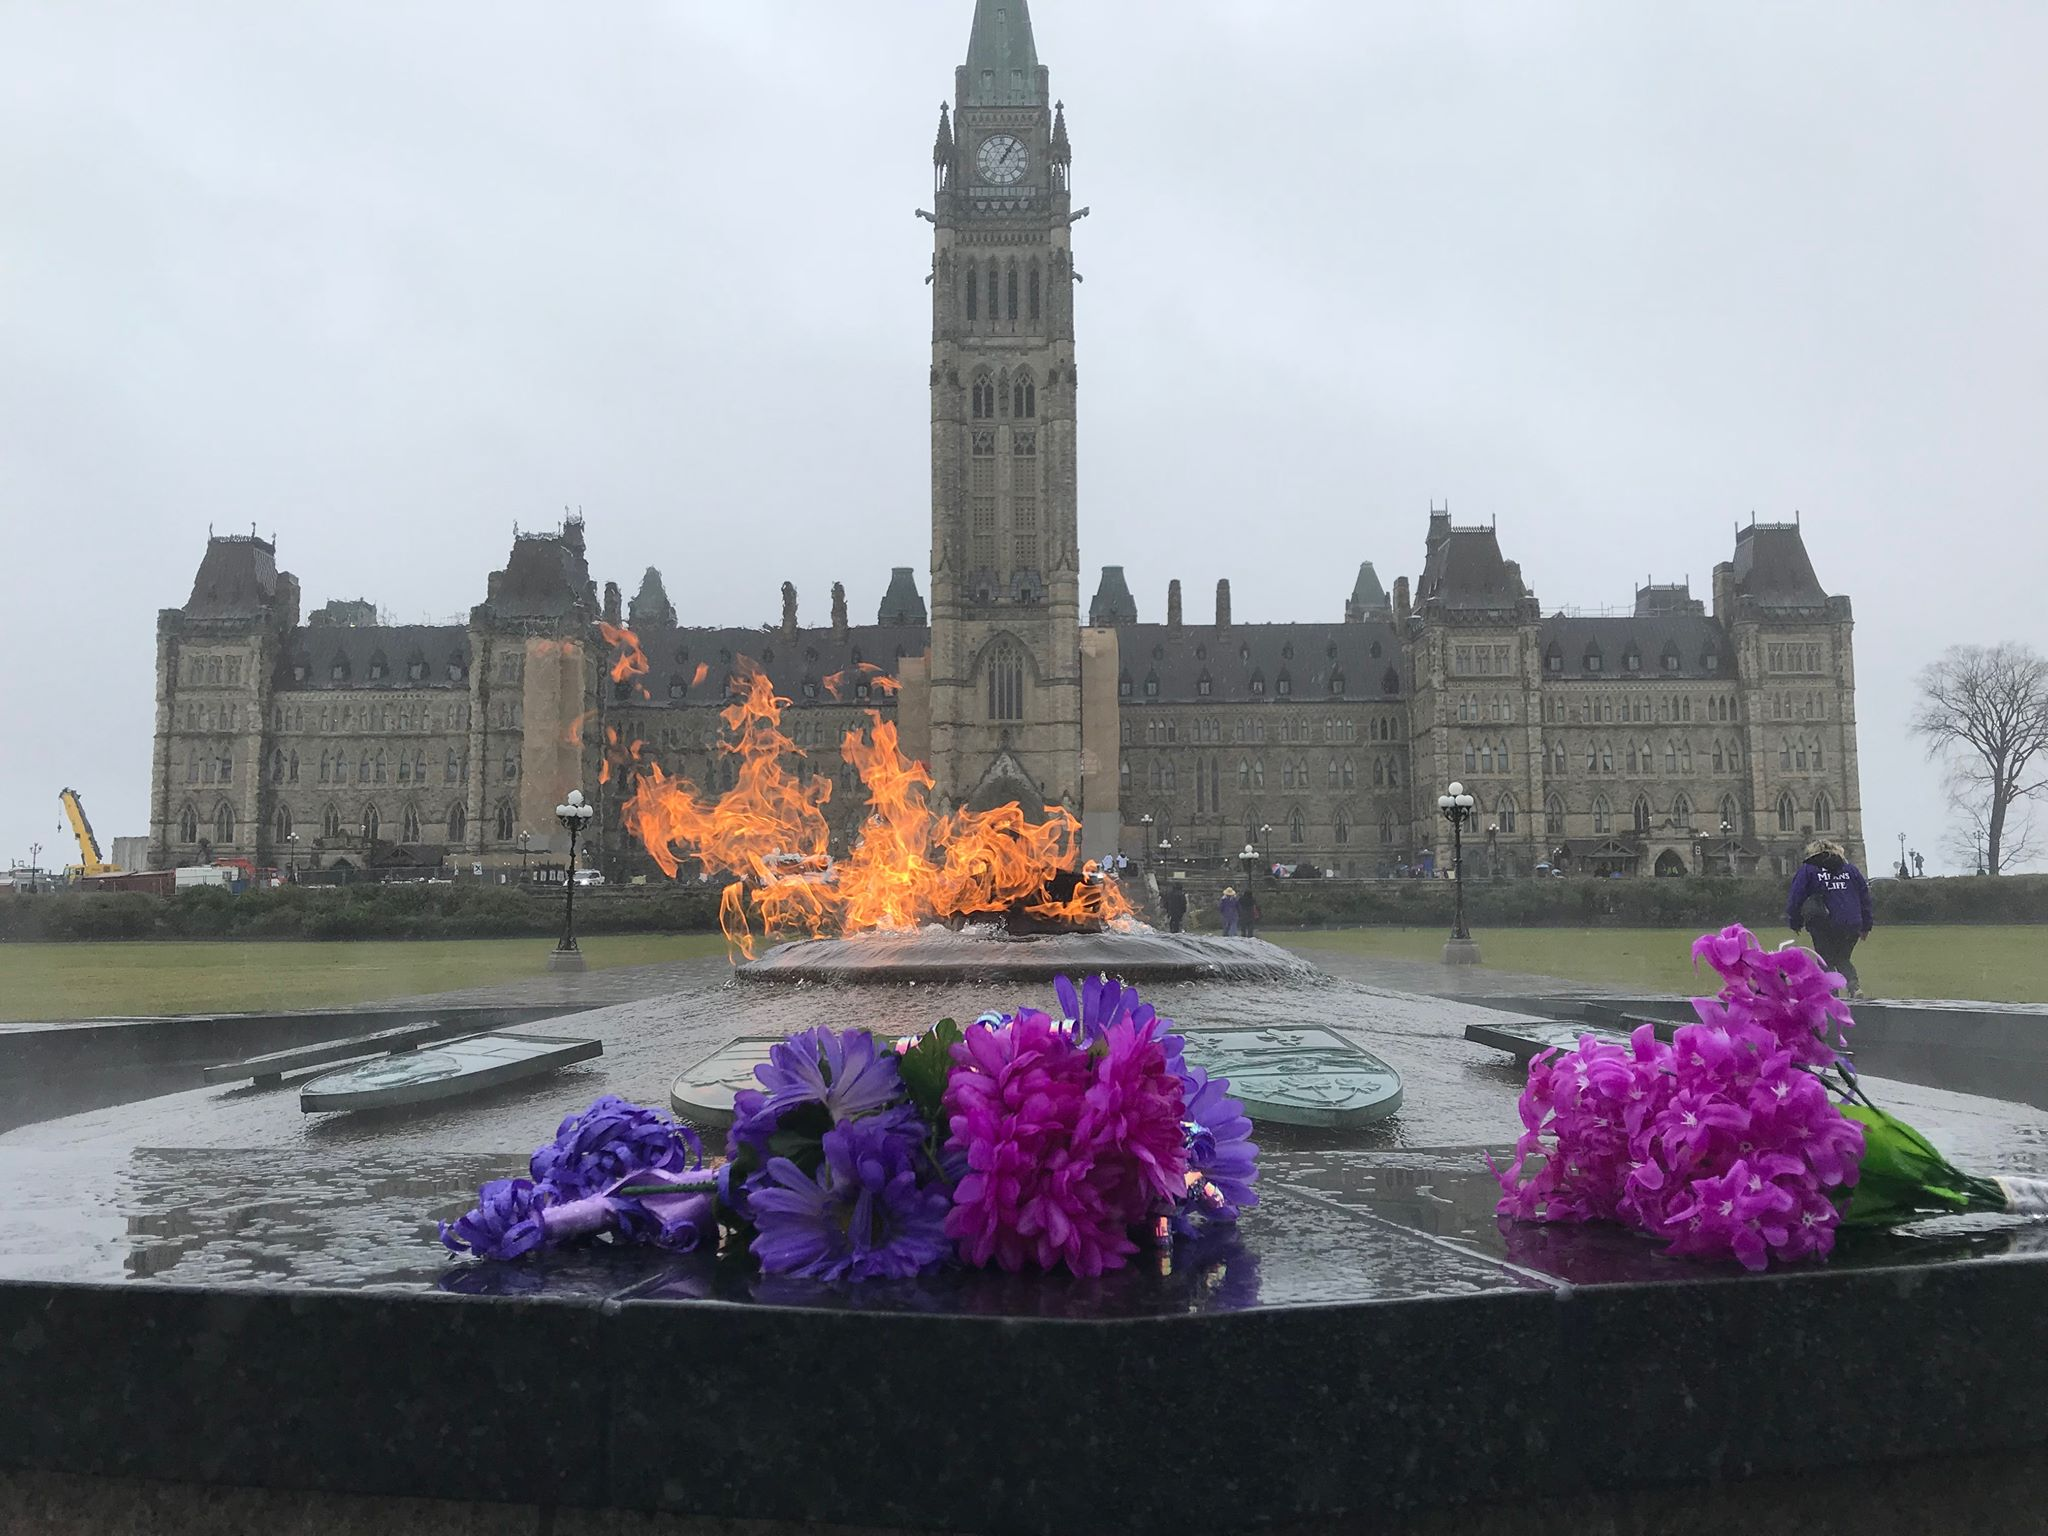 Justice for Tori chanted on Parliament Hill